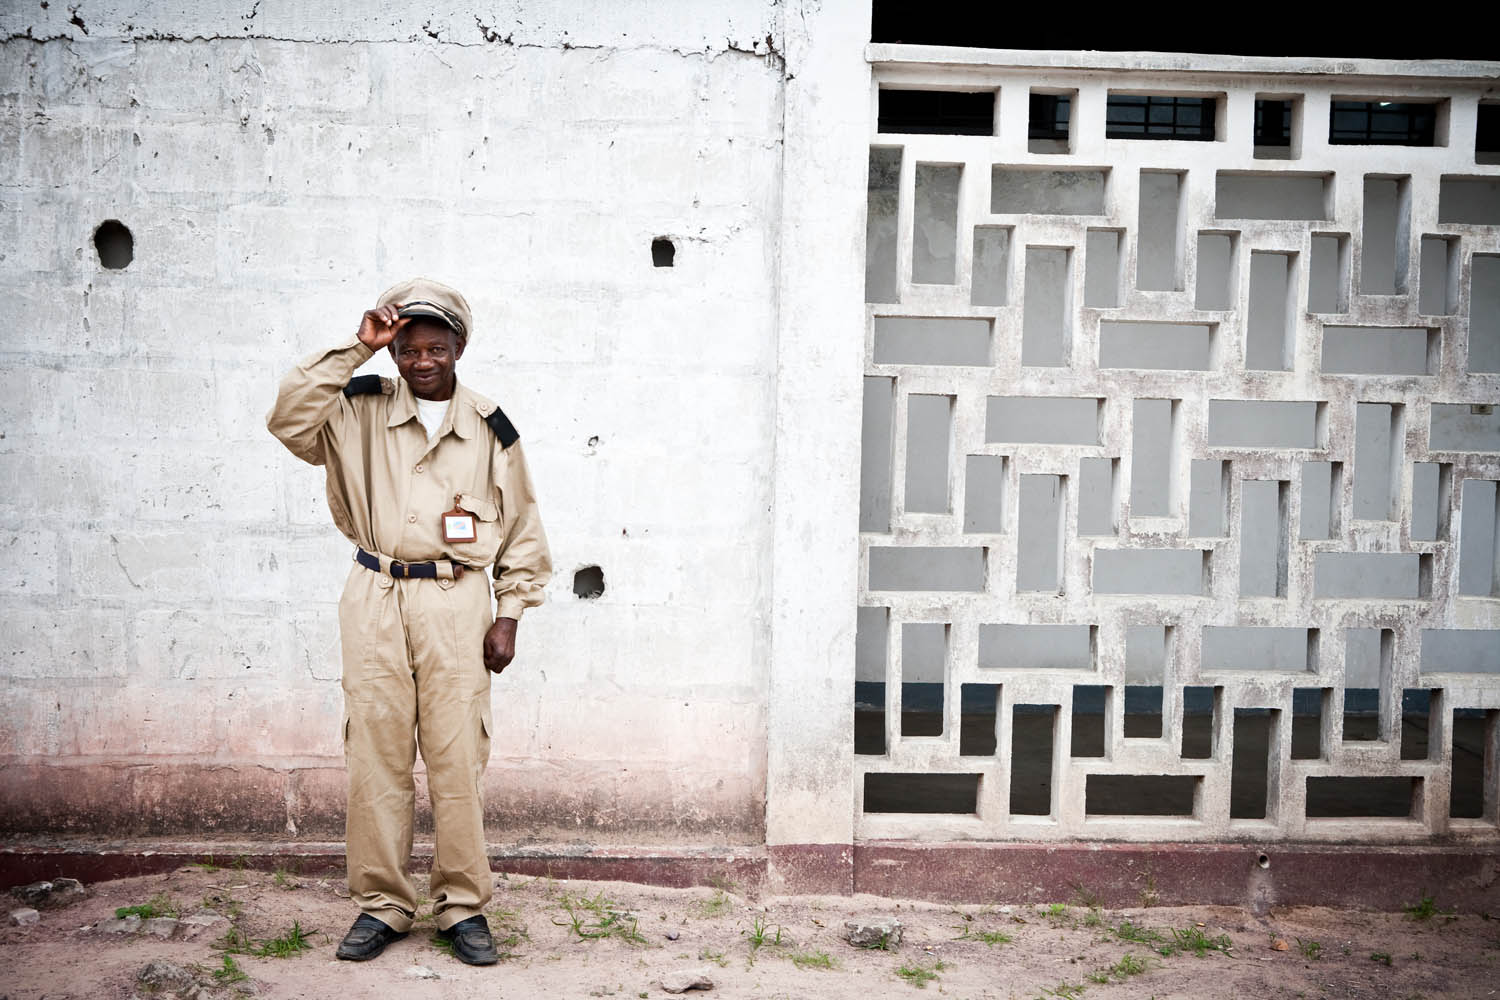 As I walked through the gates of the Clinique Ngaliema in Kinshasa, DRC, I felt as though I had stepped back in time. The once white, now filthy grey walls of the old hospital, and Belgian architecture spoke volumes into a bygone era of colonization and F